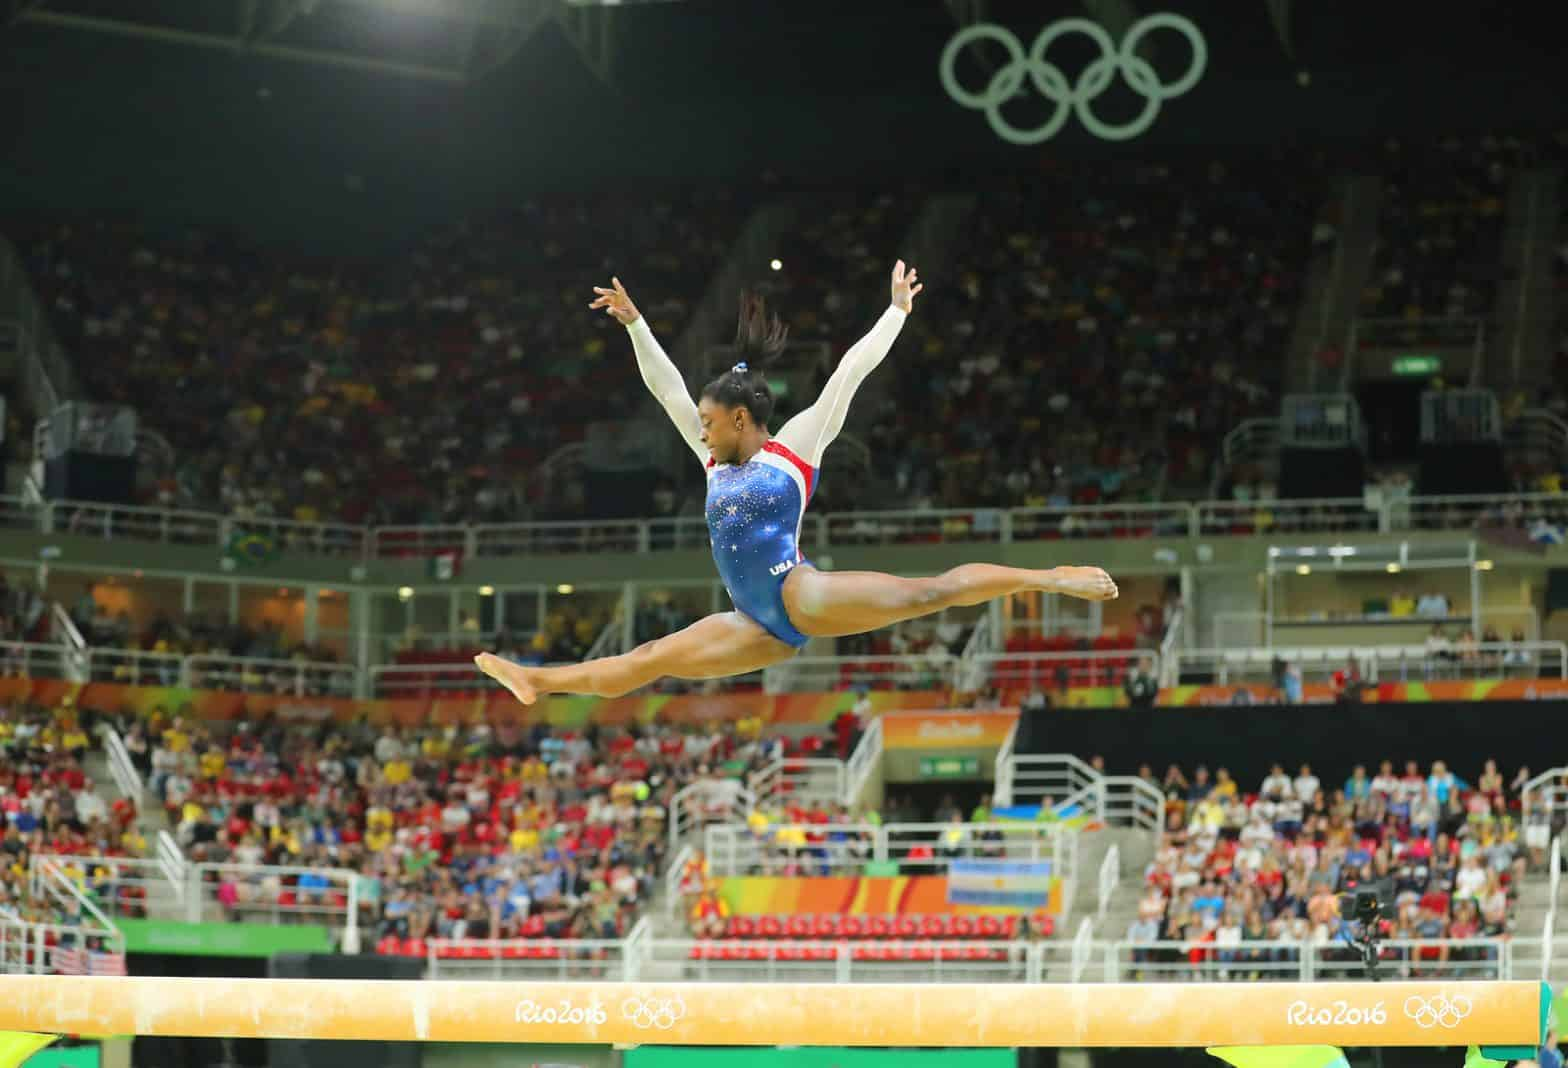 Gymnast Simone Biles was 19 years old at the Rio Olympics